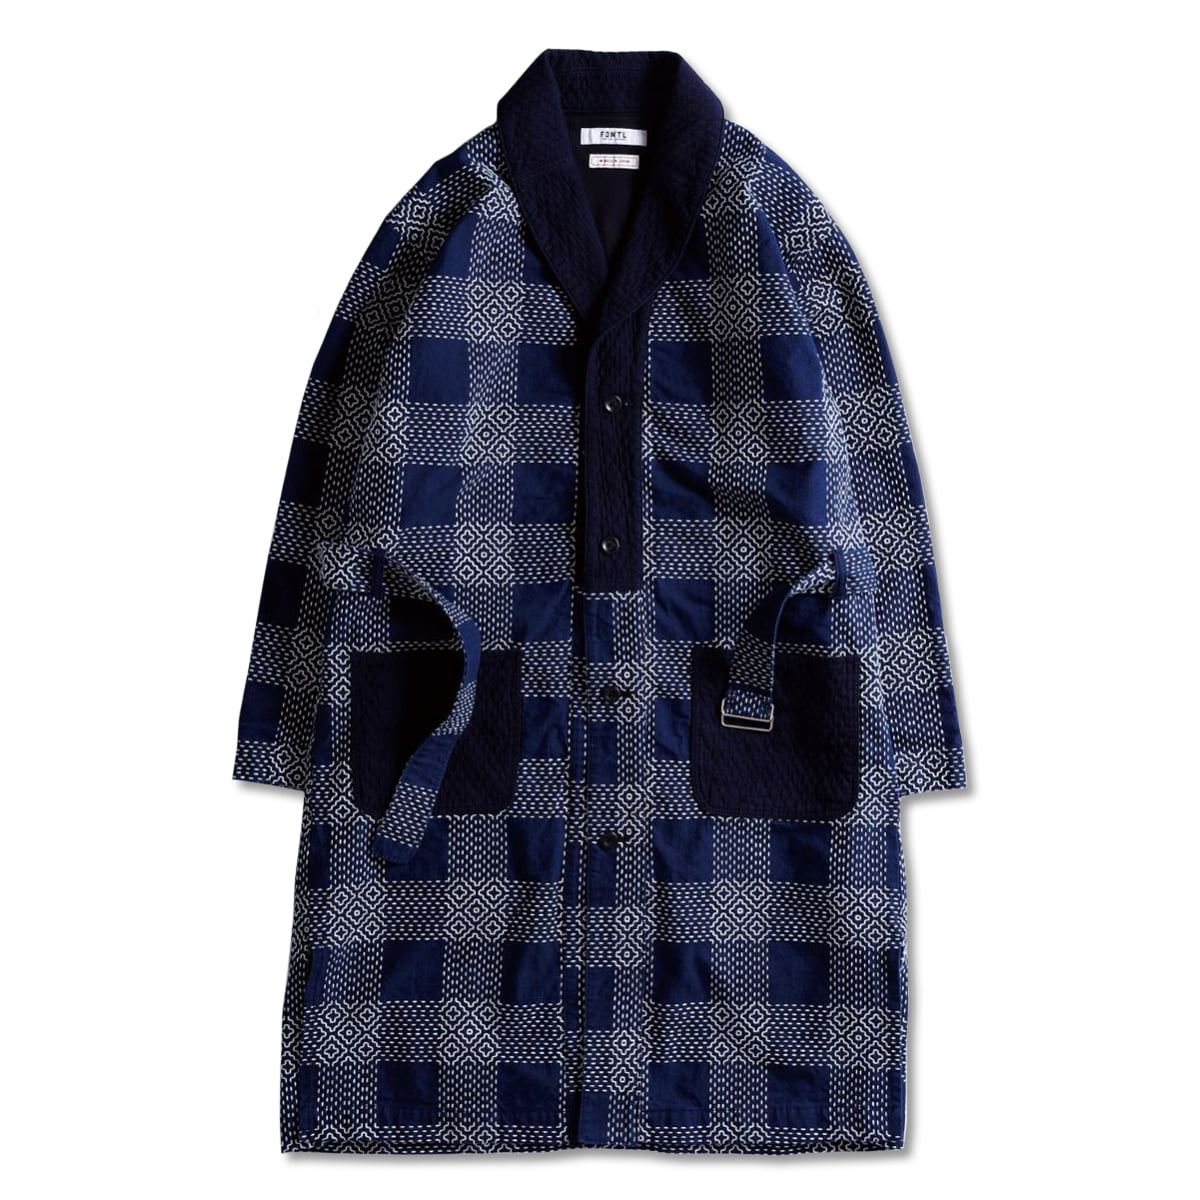 [FDMTL] SASHIKO SHAWL COLLAR COAT 'INDIGO WHITE'